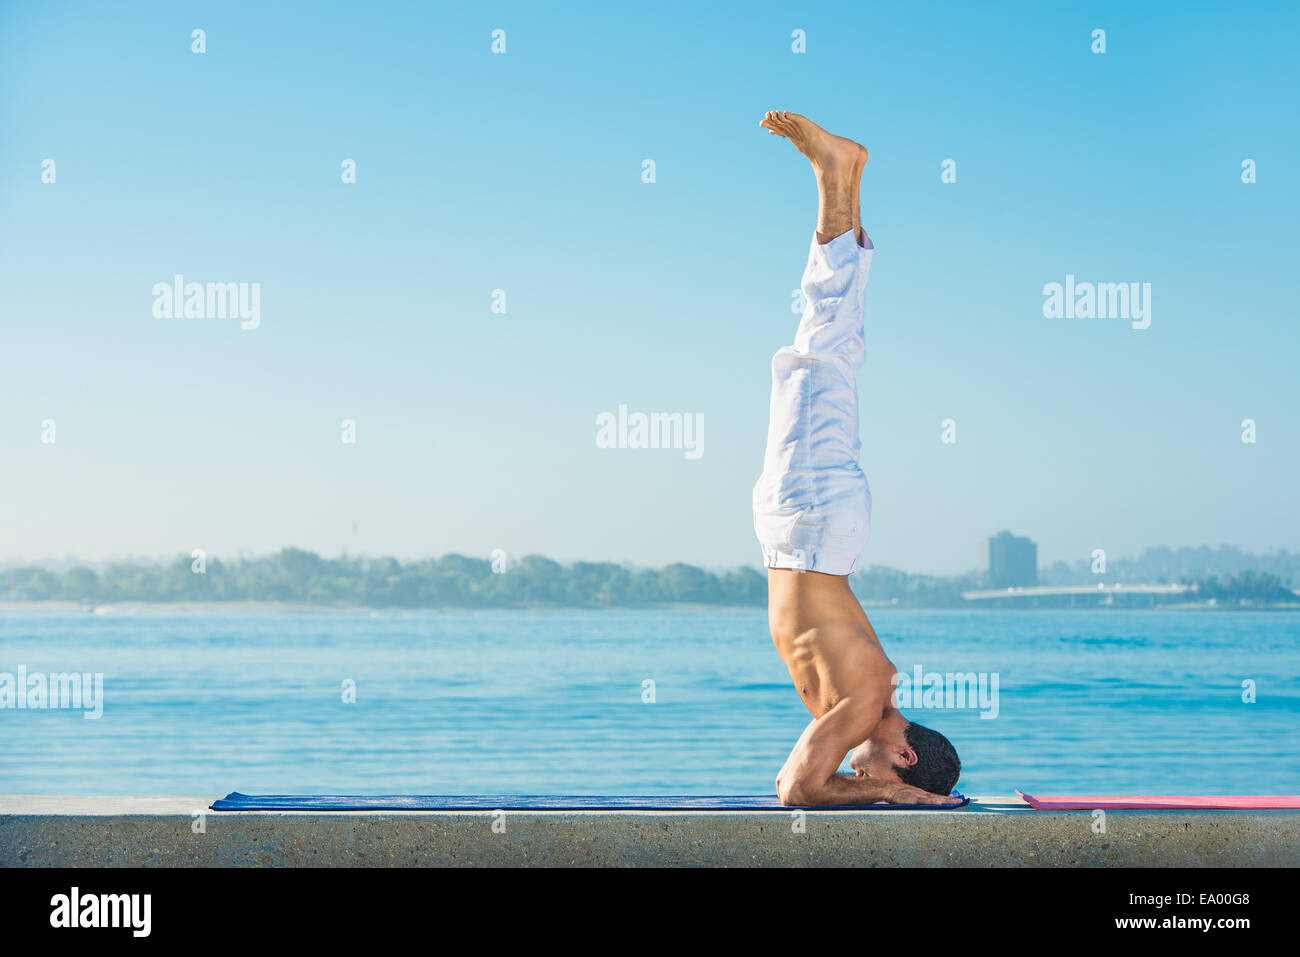 Junger Mann praktizierender Upside-down Yogaposition am Pacific Beach, San Diego, Kalifornien, USA Stockbild